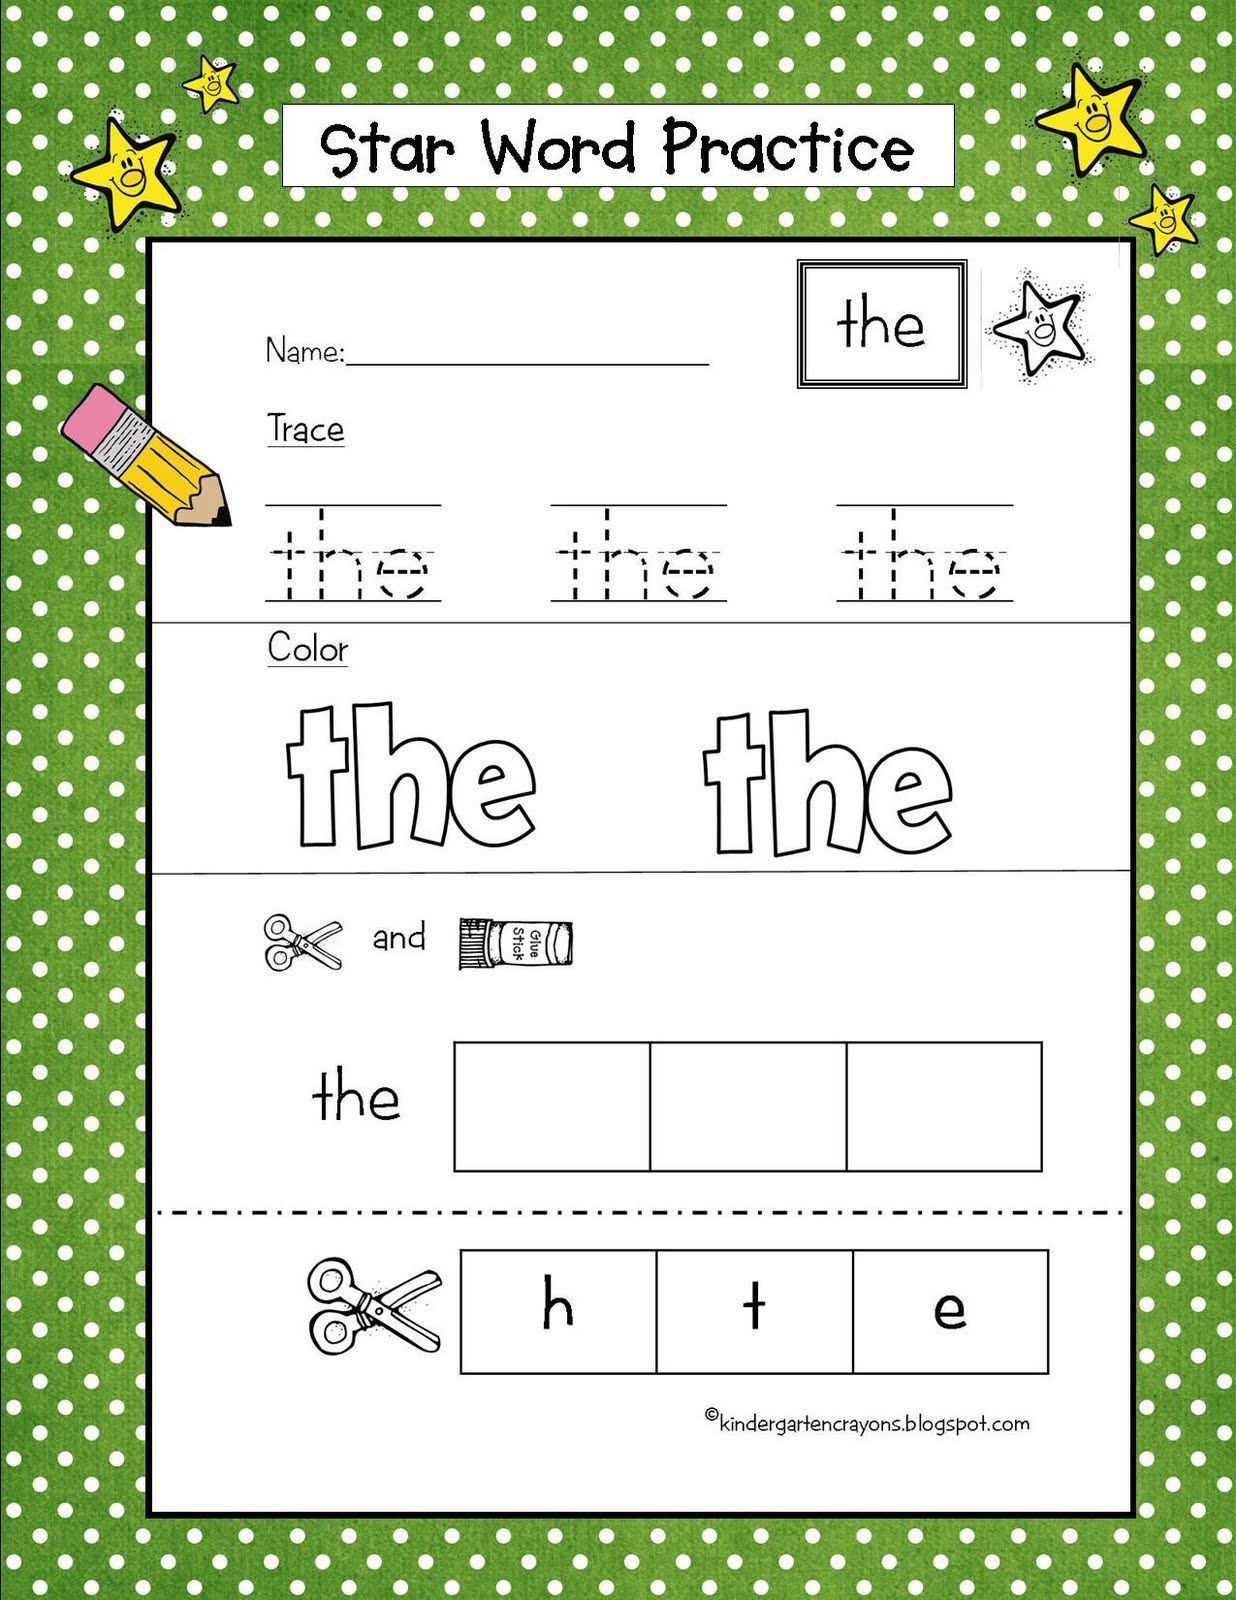 Worksheet Sight Word Activities For Kindergarten 1000 images about sight word practice on pinterest candyland color by numbers and learning words